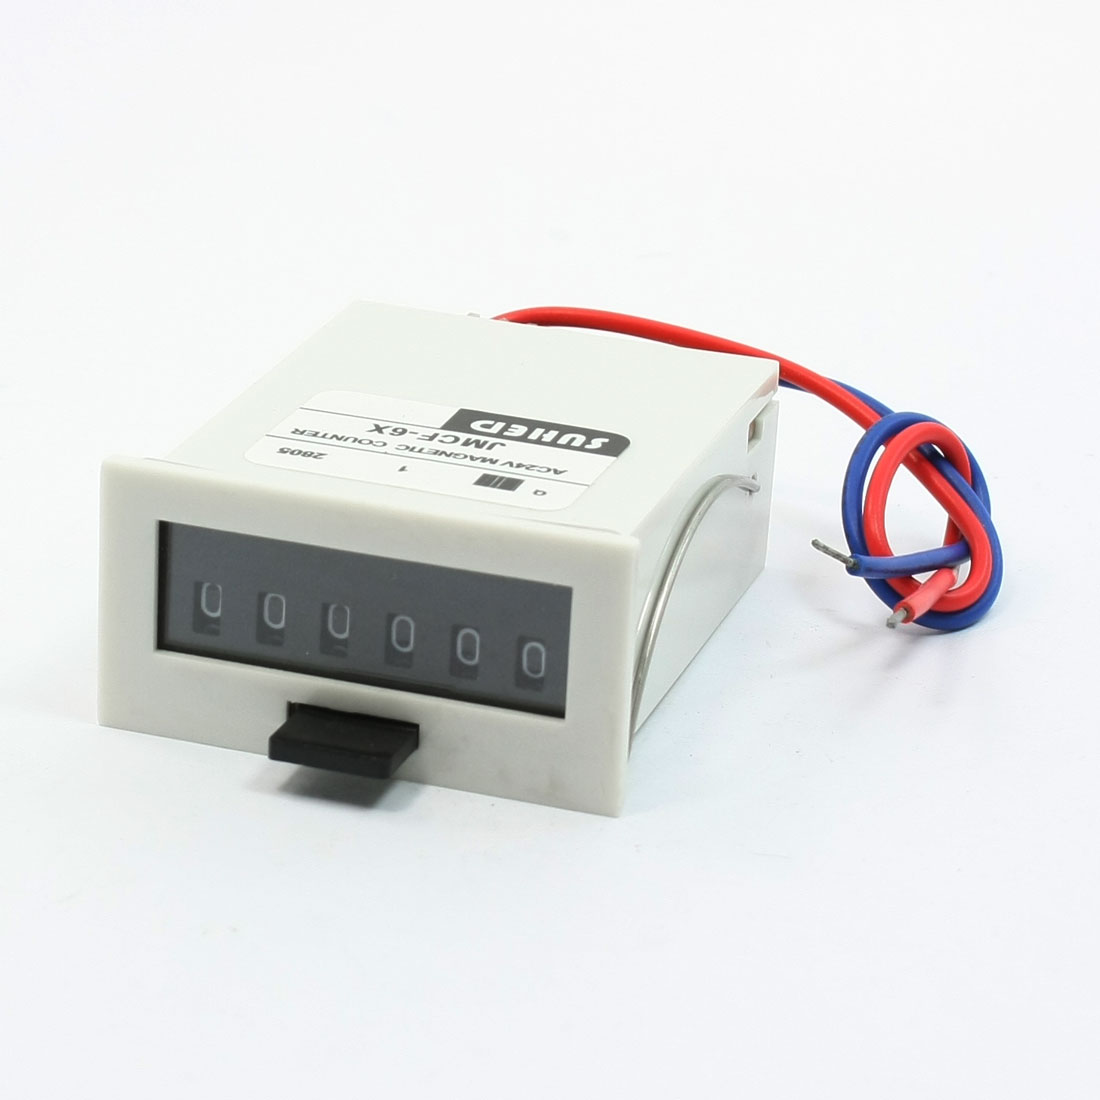 Pressing Reset 0-999999 Counting Range Magnetic Counter 24V DC